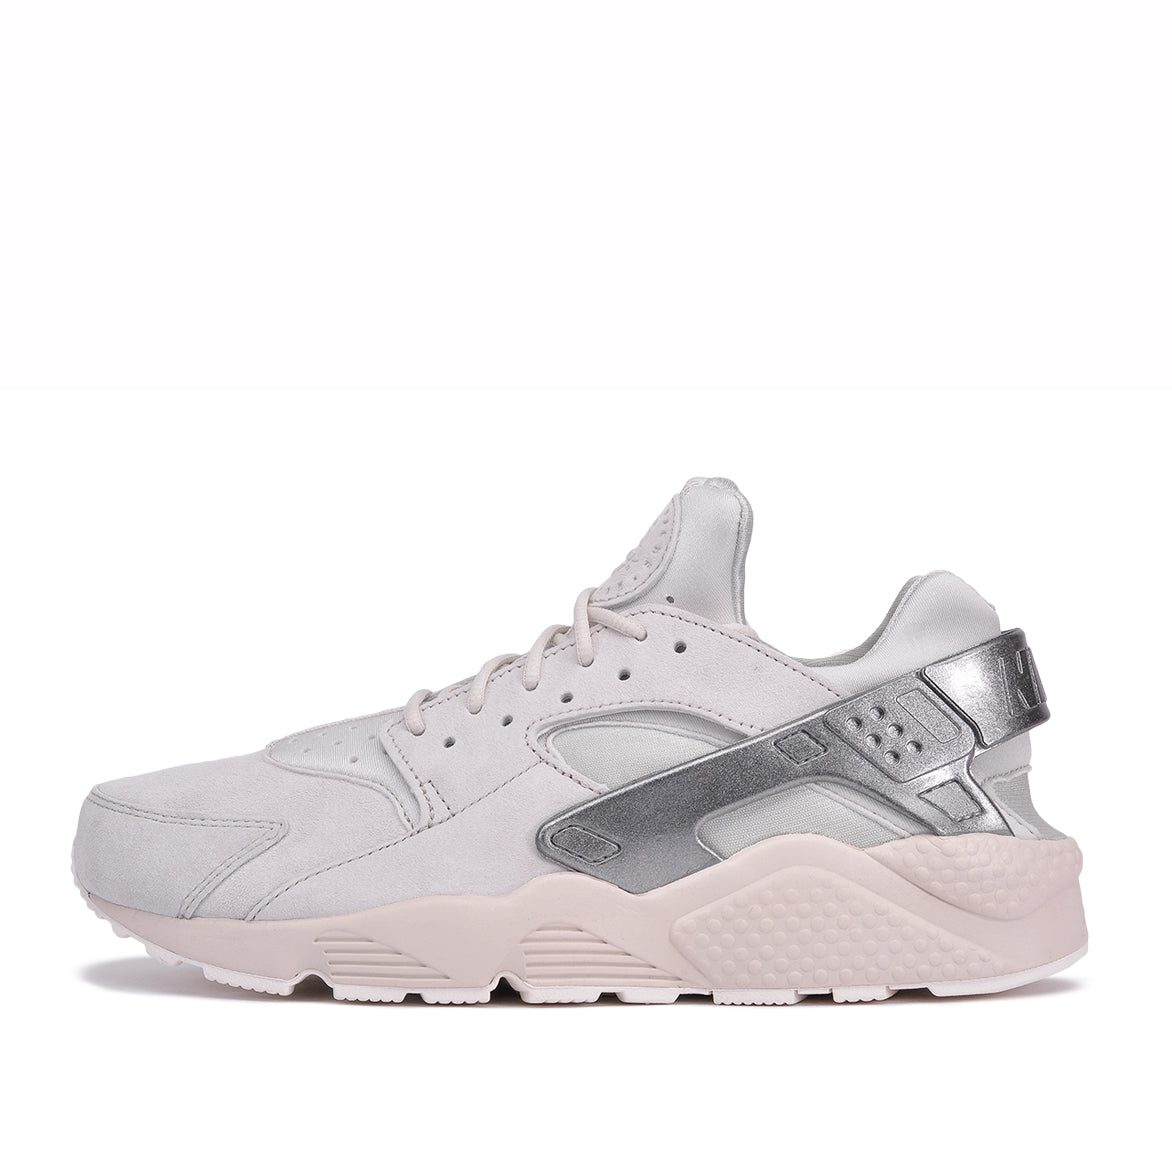 finest selection 3f1d6 00e89 AIR HUARACHE RUN PRM - LIGHT BONE   METALLIC COOL GREY ...